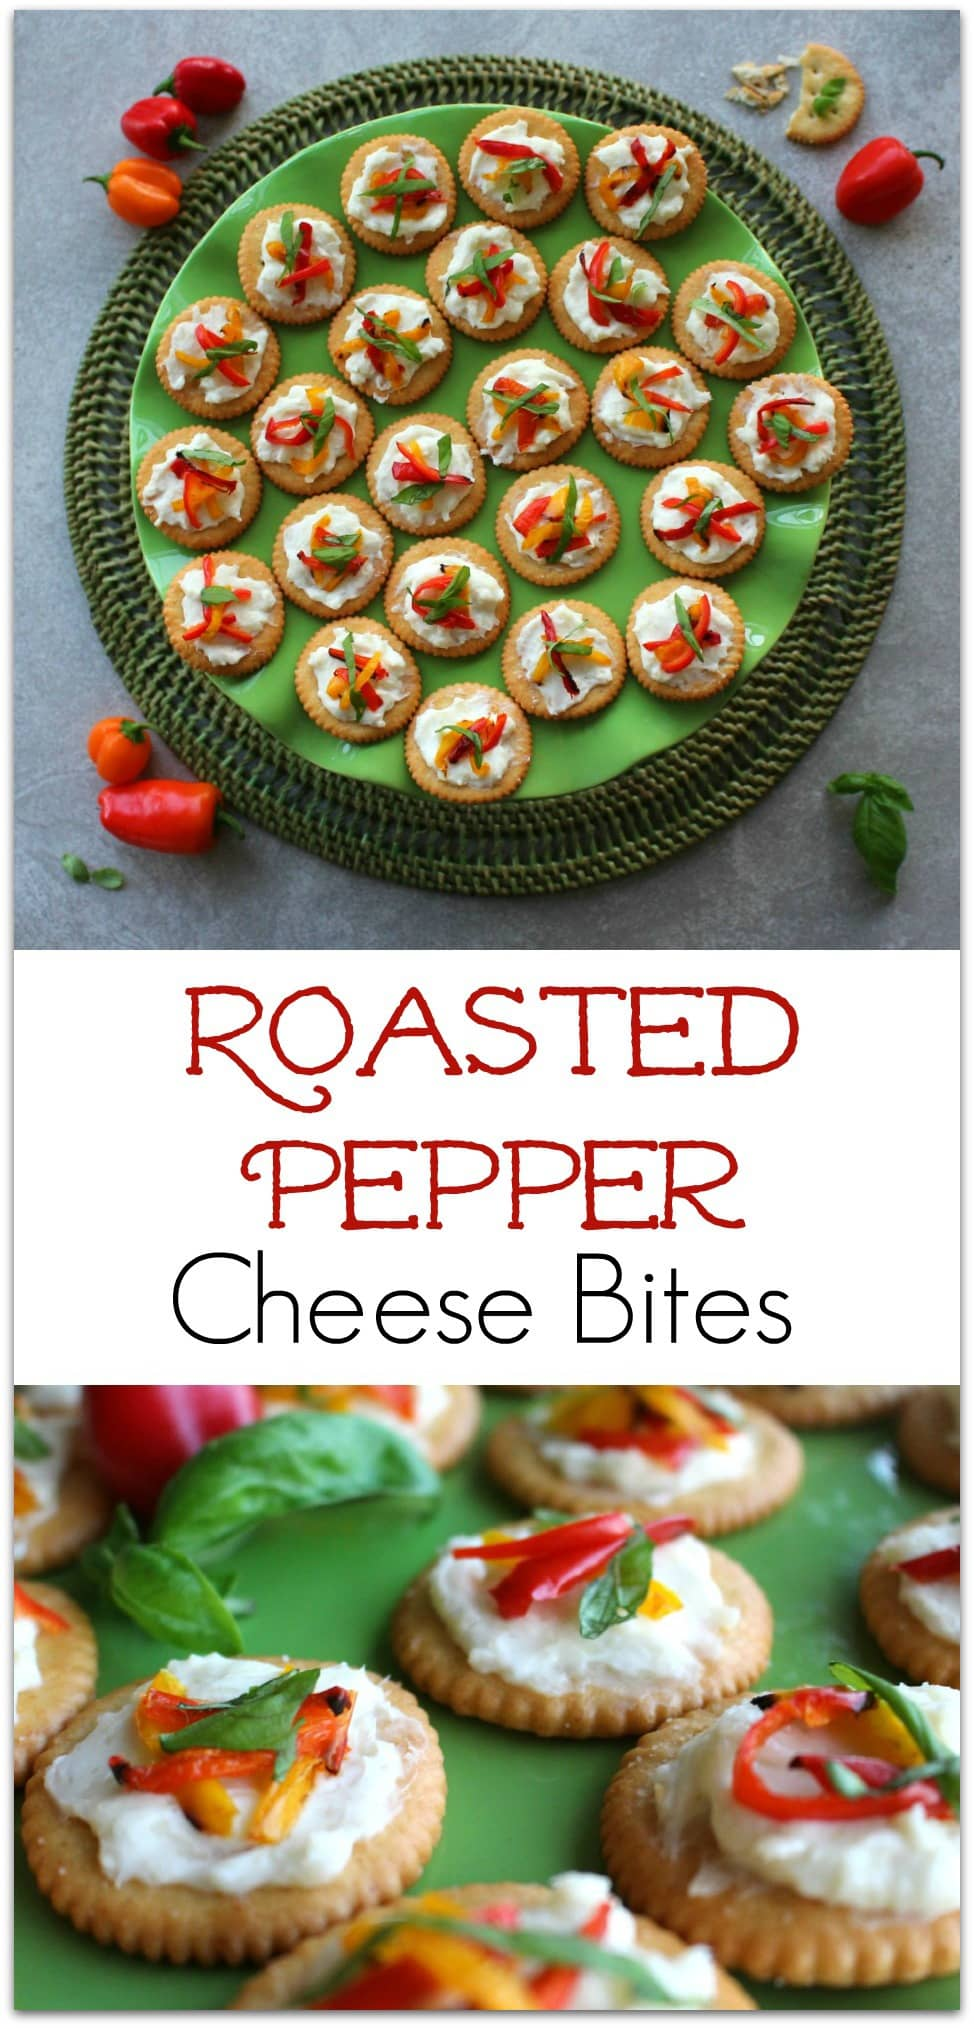 This recipe for Roasted Pepper Cheese Bites is so easy! Have friends dropping over on the fly? No worries! You can make these in minutes! Have these 5 simple ingredients on hand and you'll never be without a quick appetizers over the holidays or anytime!